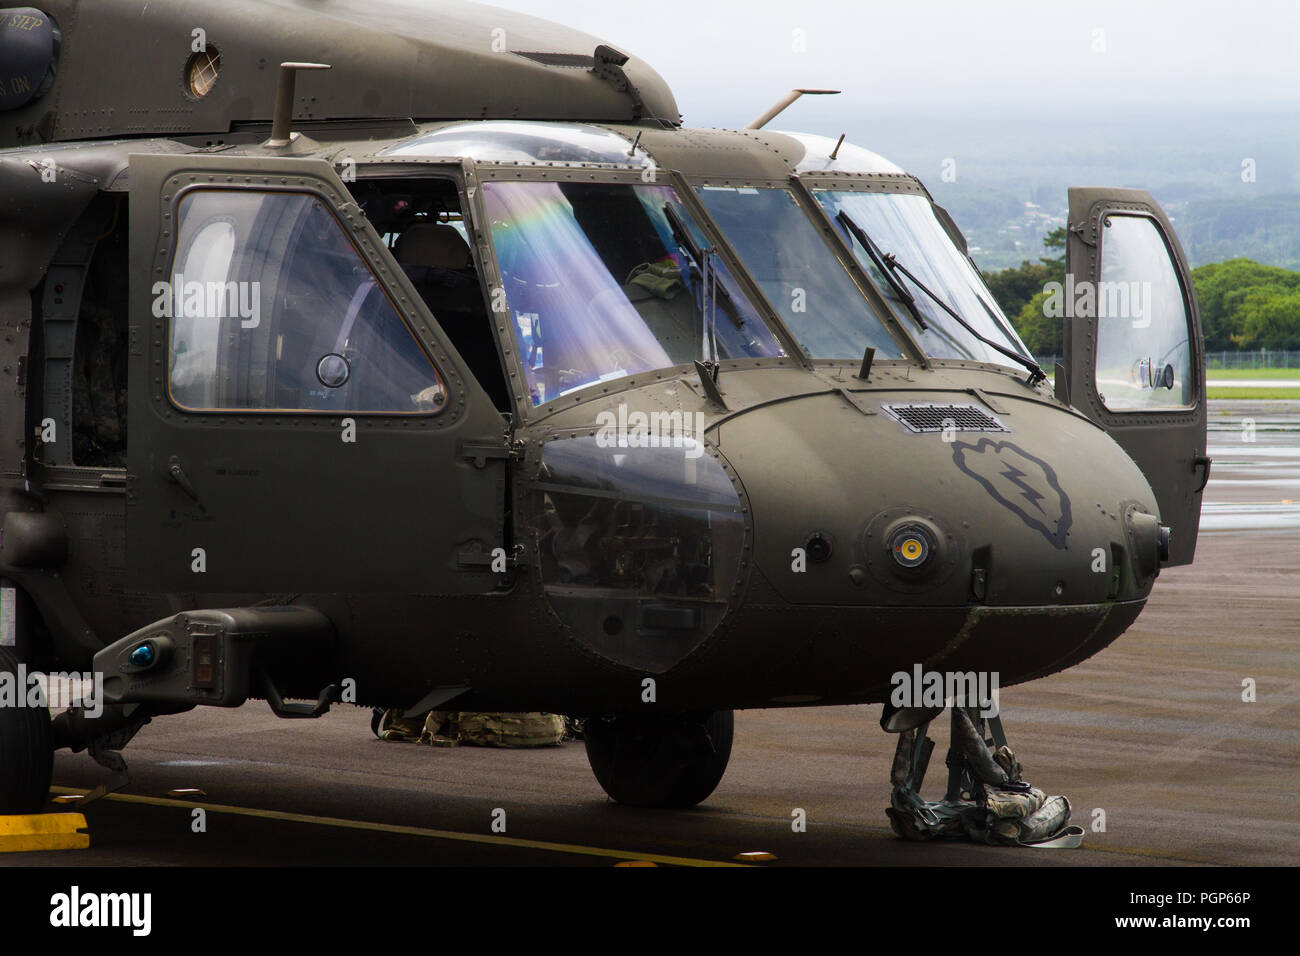 Soldiers from UH-60 Black Hawk flight crews, 25th Combat Aviation Brigade, 25th Infantry Division, Hawaii, prepare to provide Department of Defense support missions to the Federal Emergency Management Agency as part of Joint Task Force 5-0. This task force was established to respond to the effects of Hurricane Lane on the state of Hawaii.     Local authorities and the State of Hawaii, through JTF 5-0, requested HH-60M Black Hawk helicopters with hoist capability to assist local authorities with recovery operations on the Isle of Hawaii.    JTF 5-0 is a joint task force led by a dual status com - Stock Image